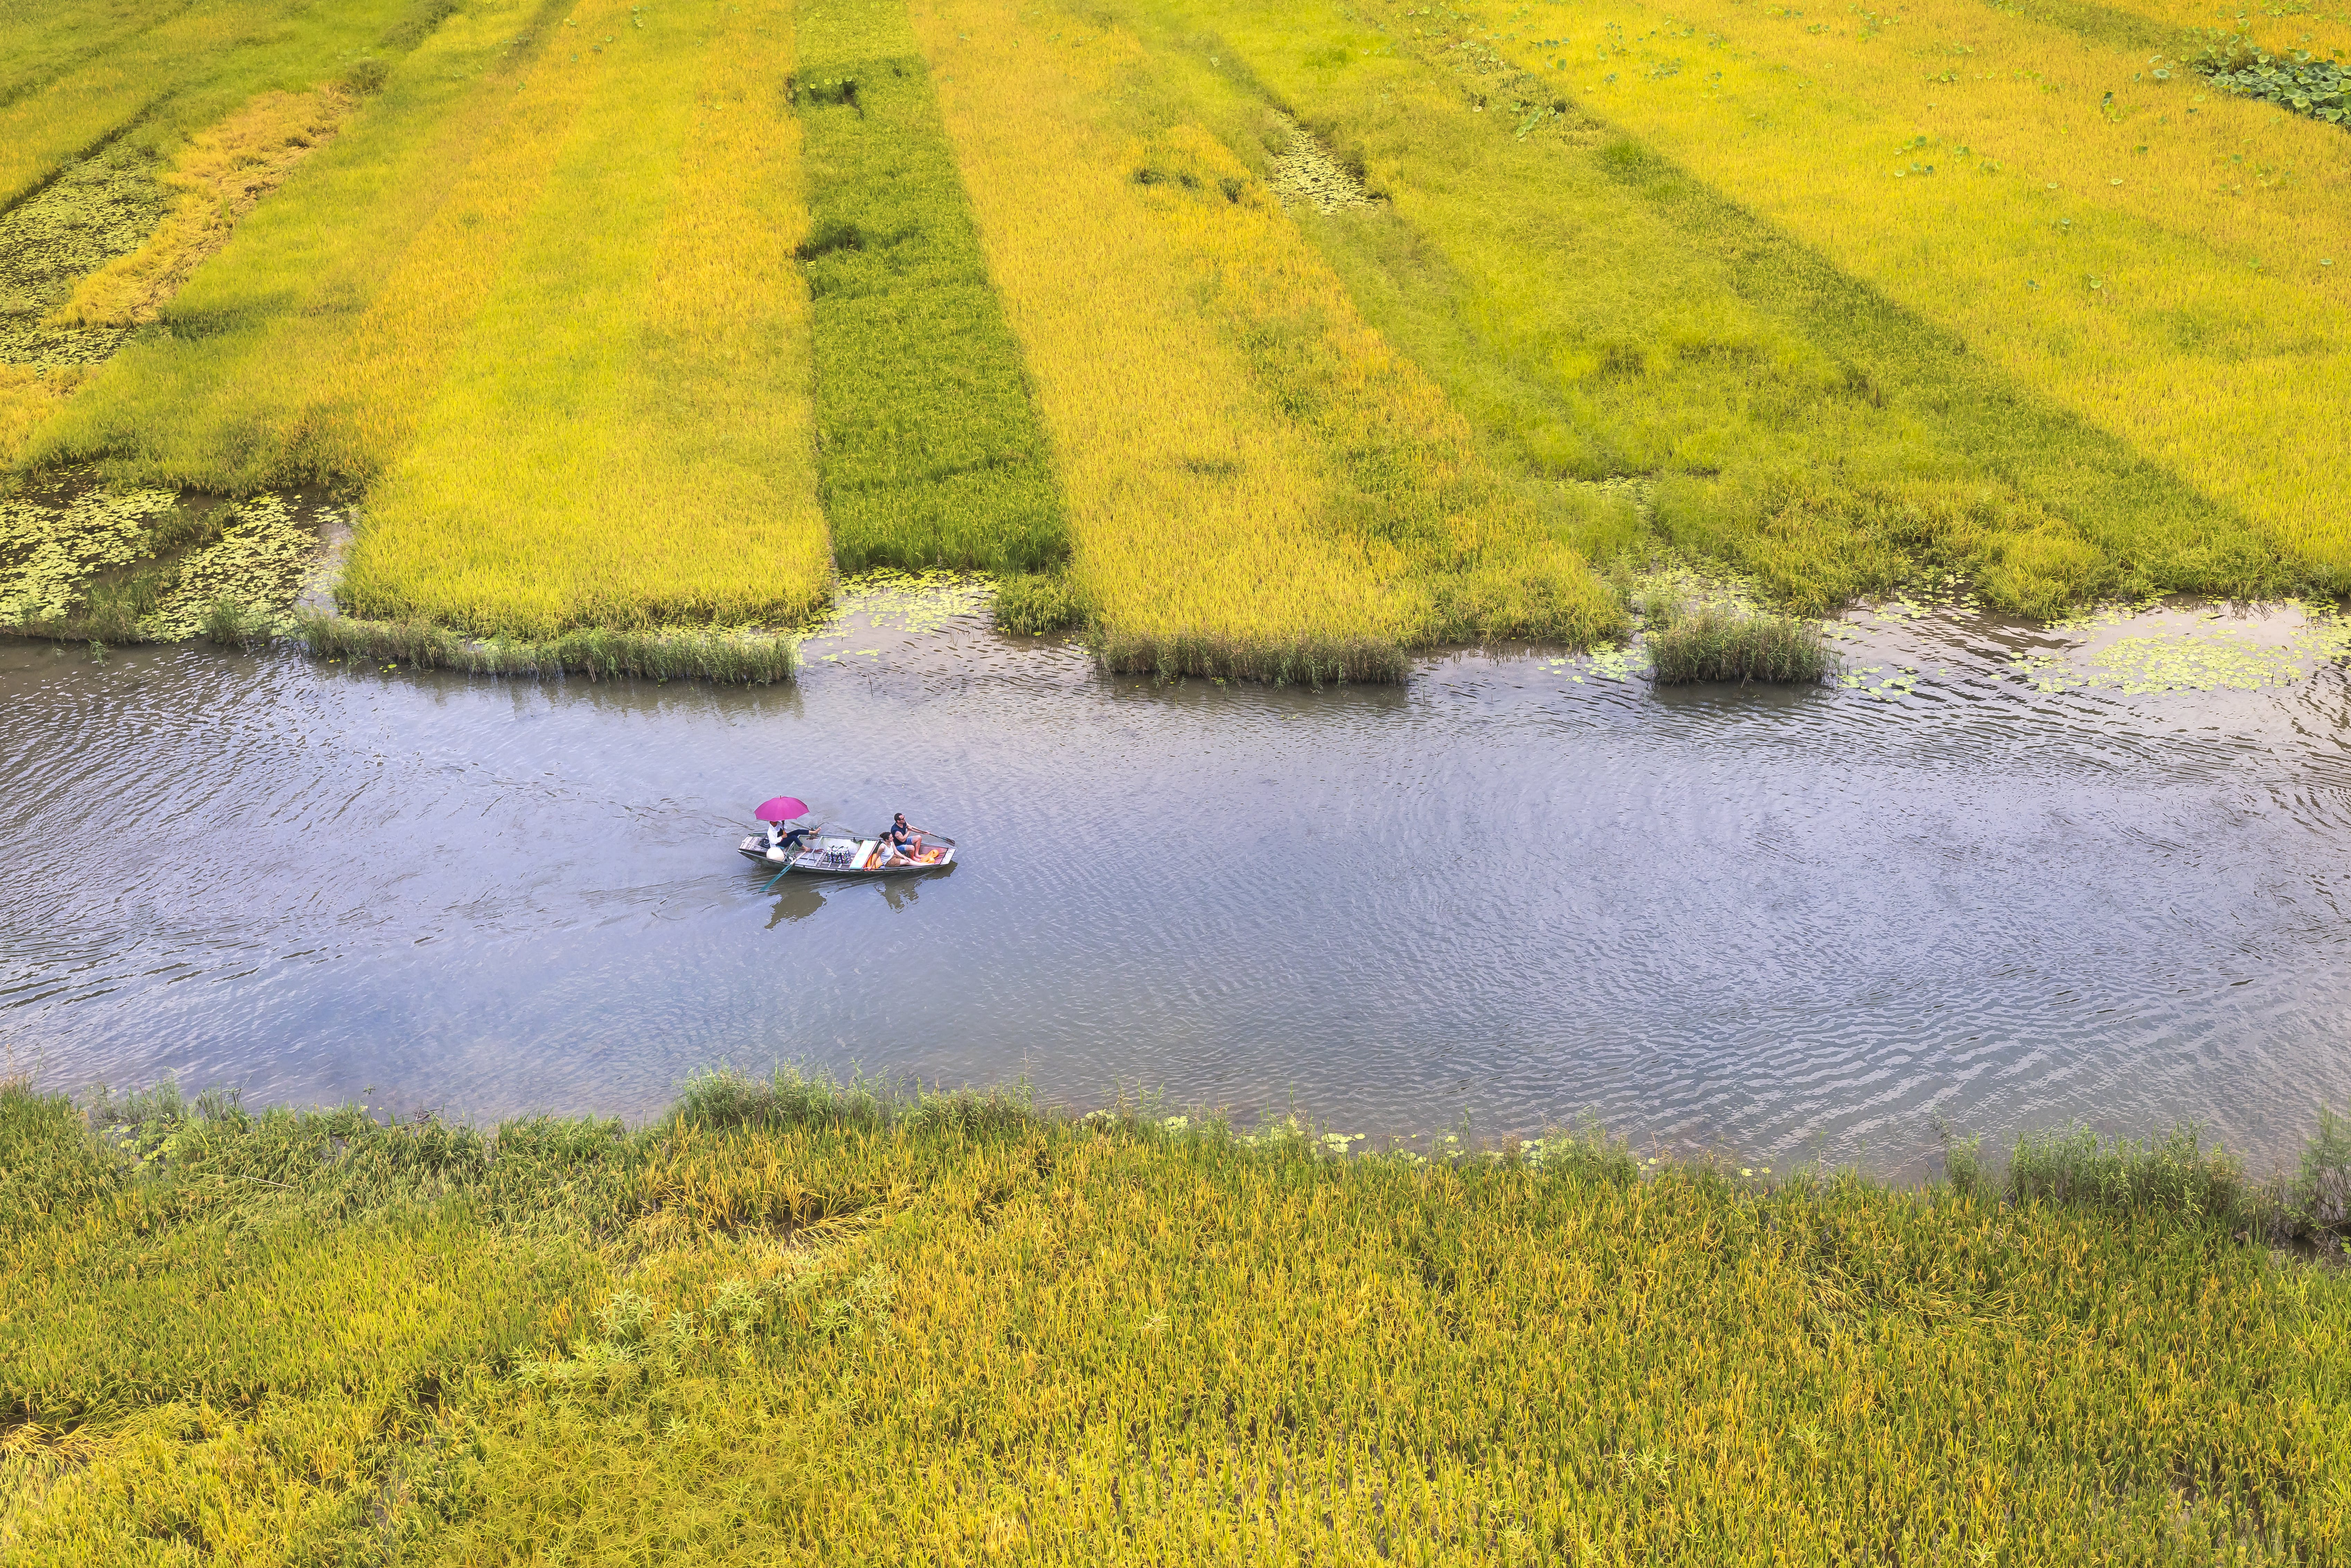 Boat on River Between Green Field